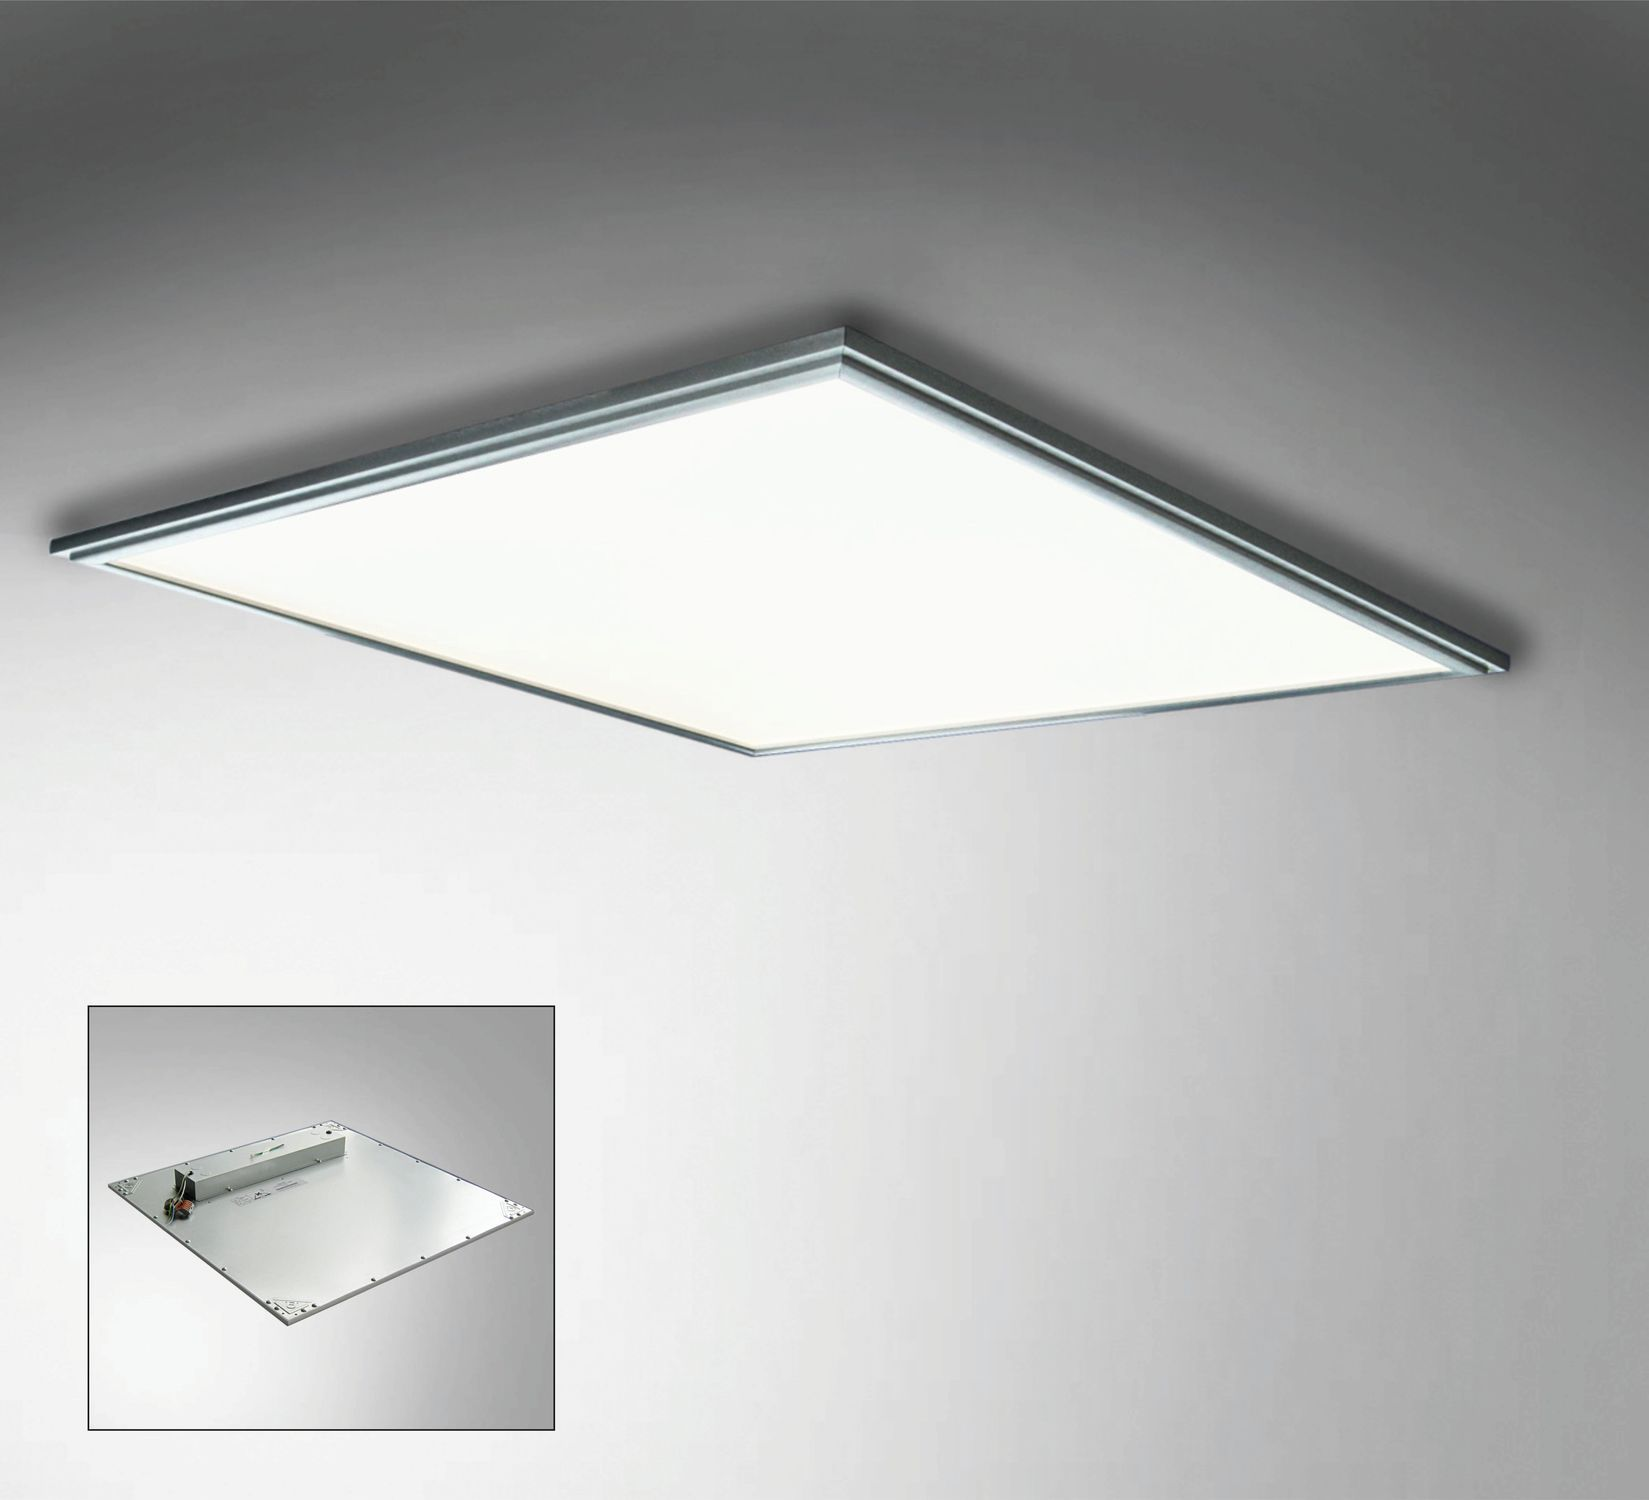 Recessed Ceiling Light Fixture Grid Panel 625 Leccor Led Square Outdoor